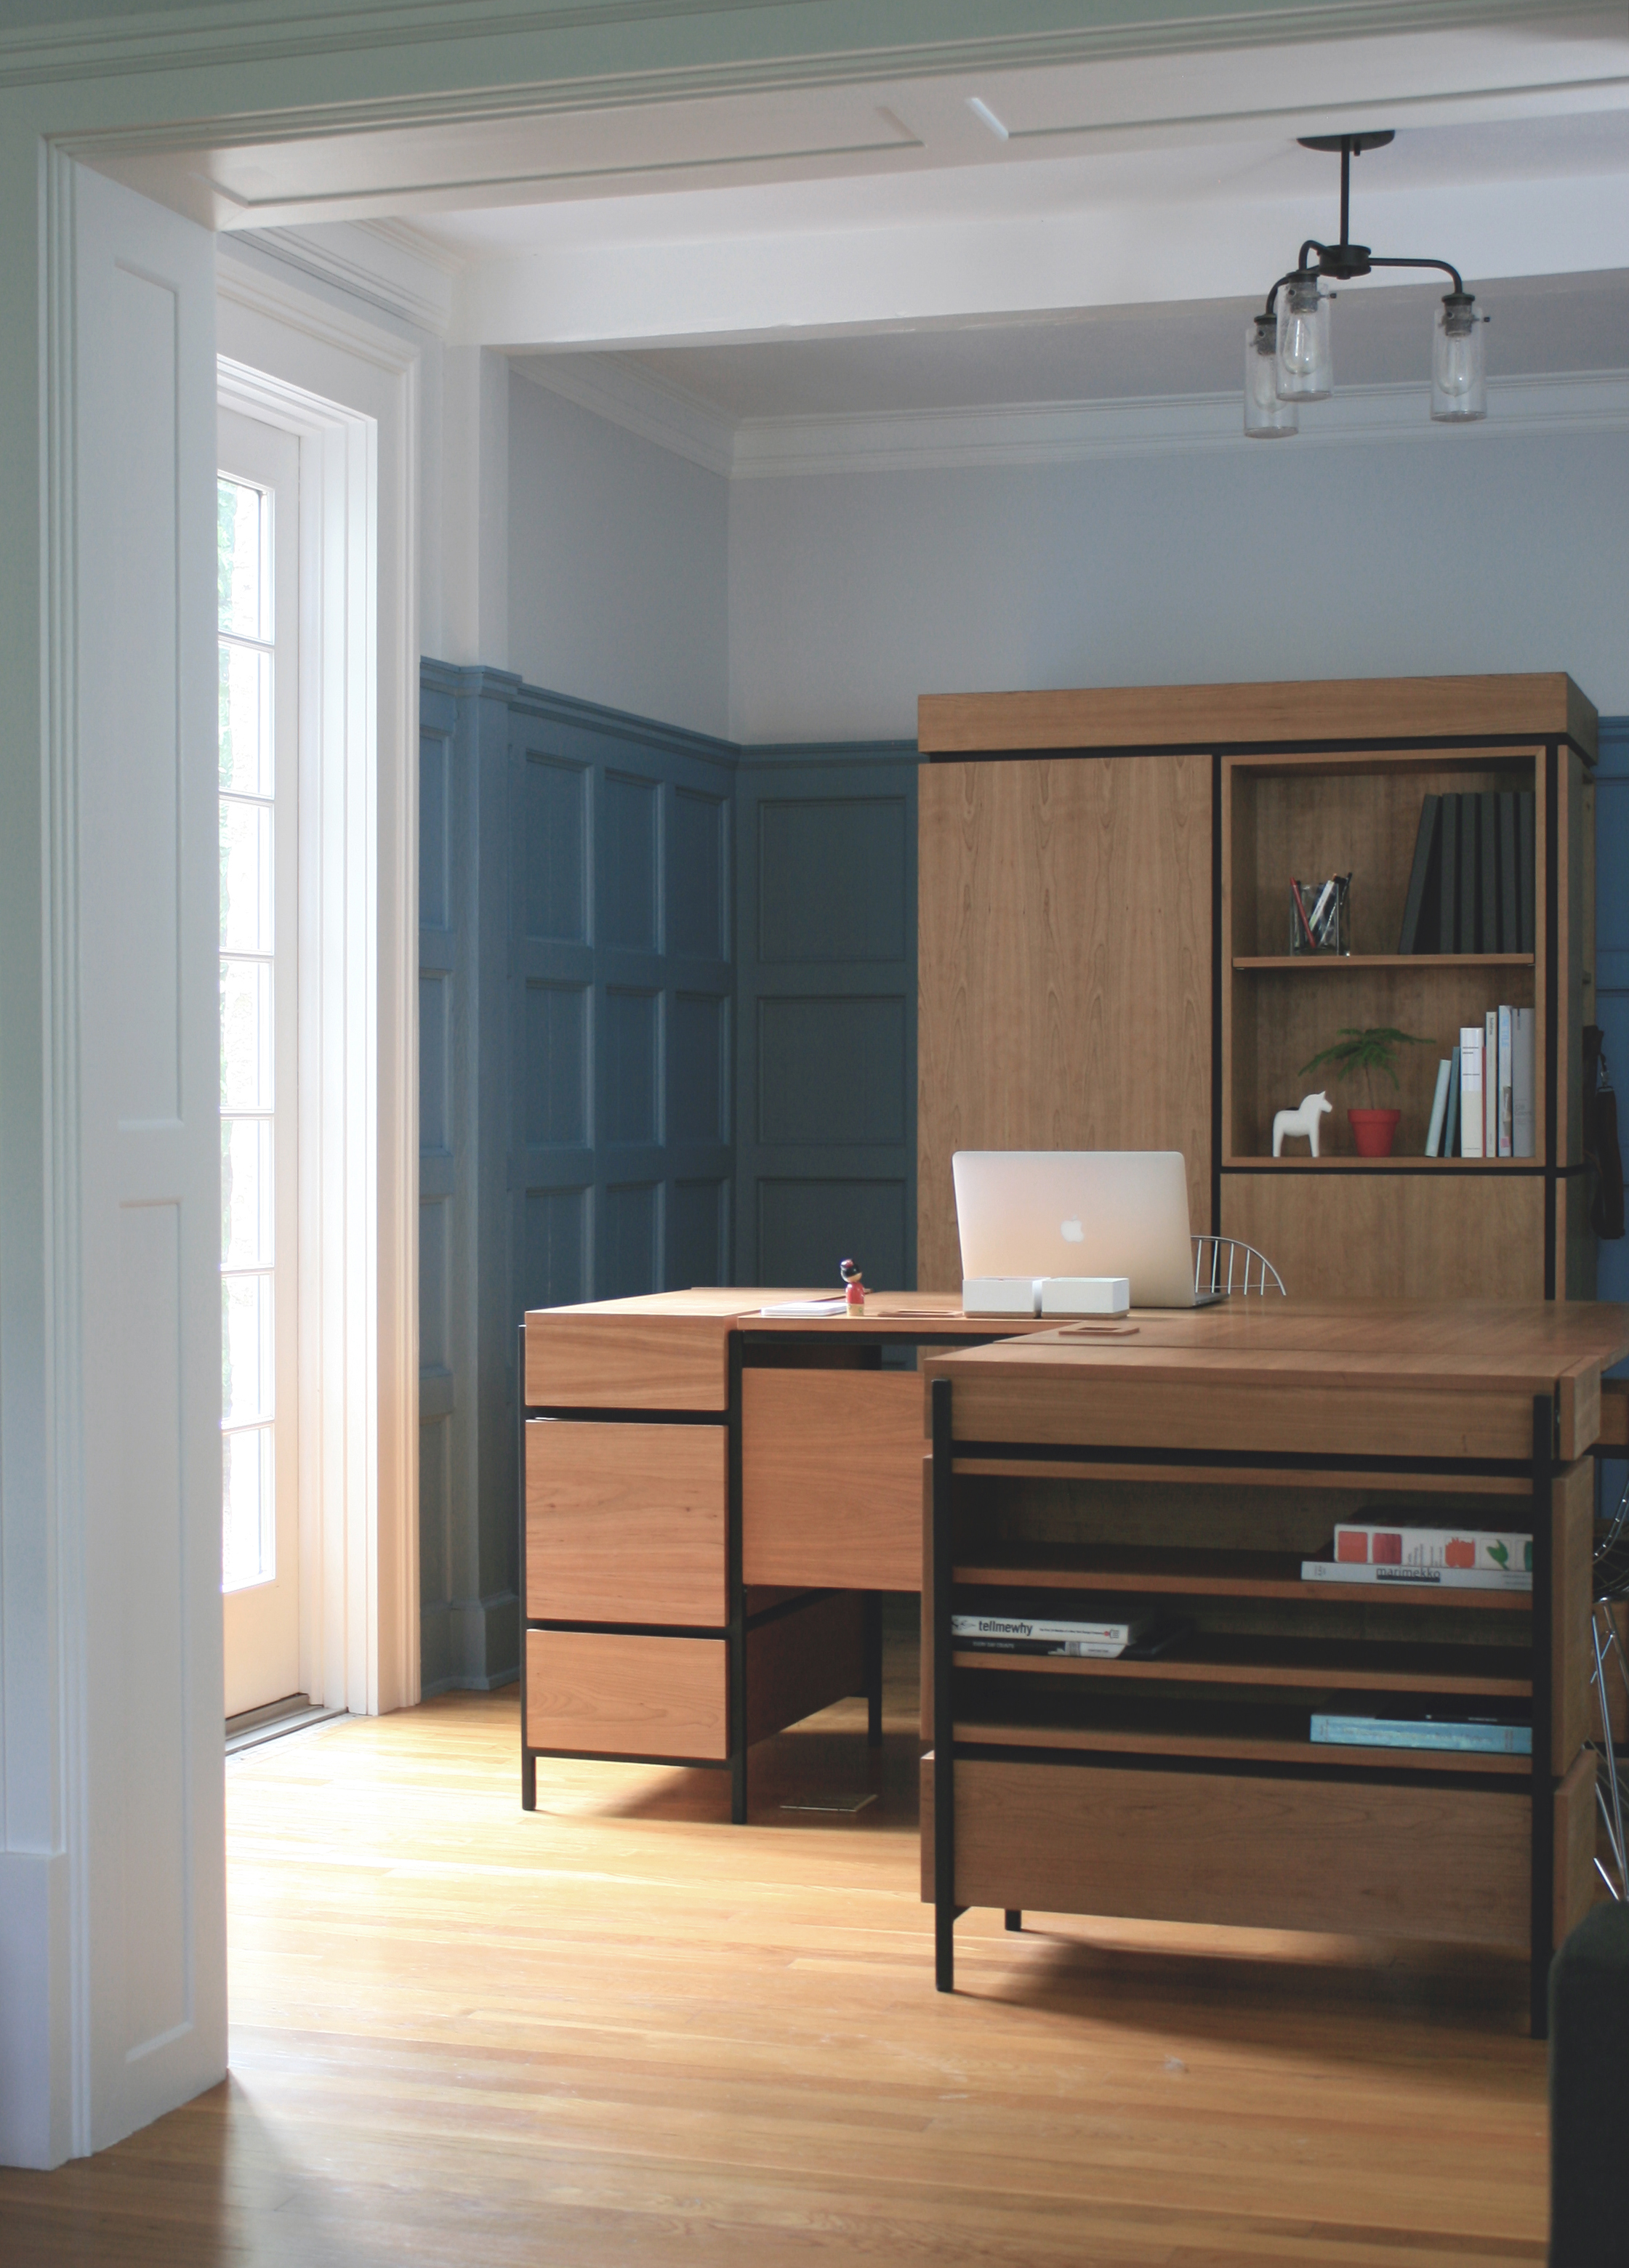 norden-at-home-interior-space-design-family-room-office-3